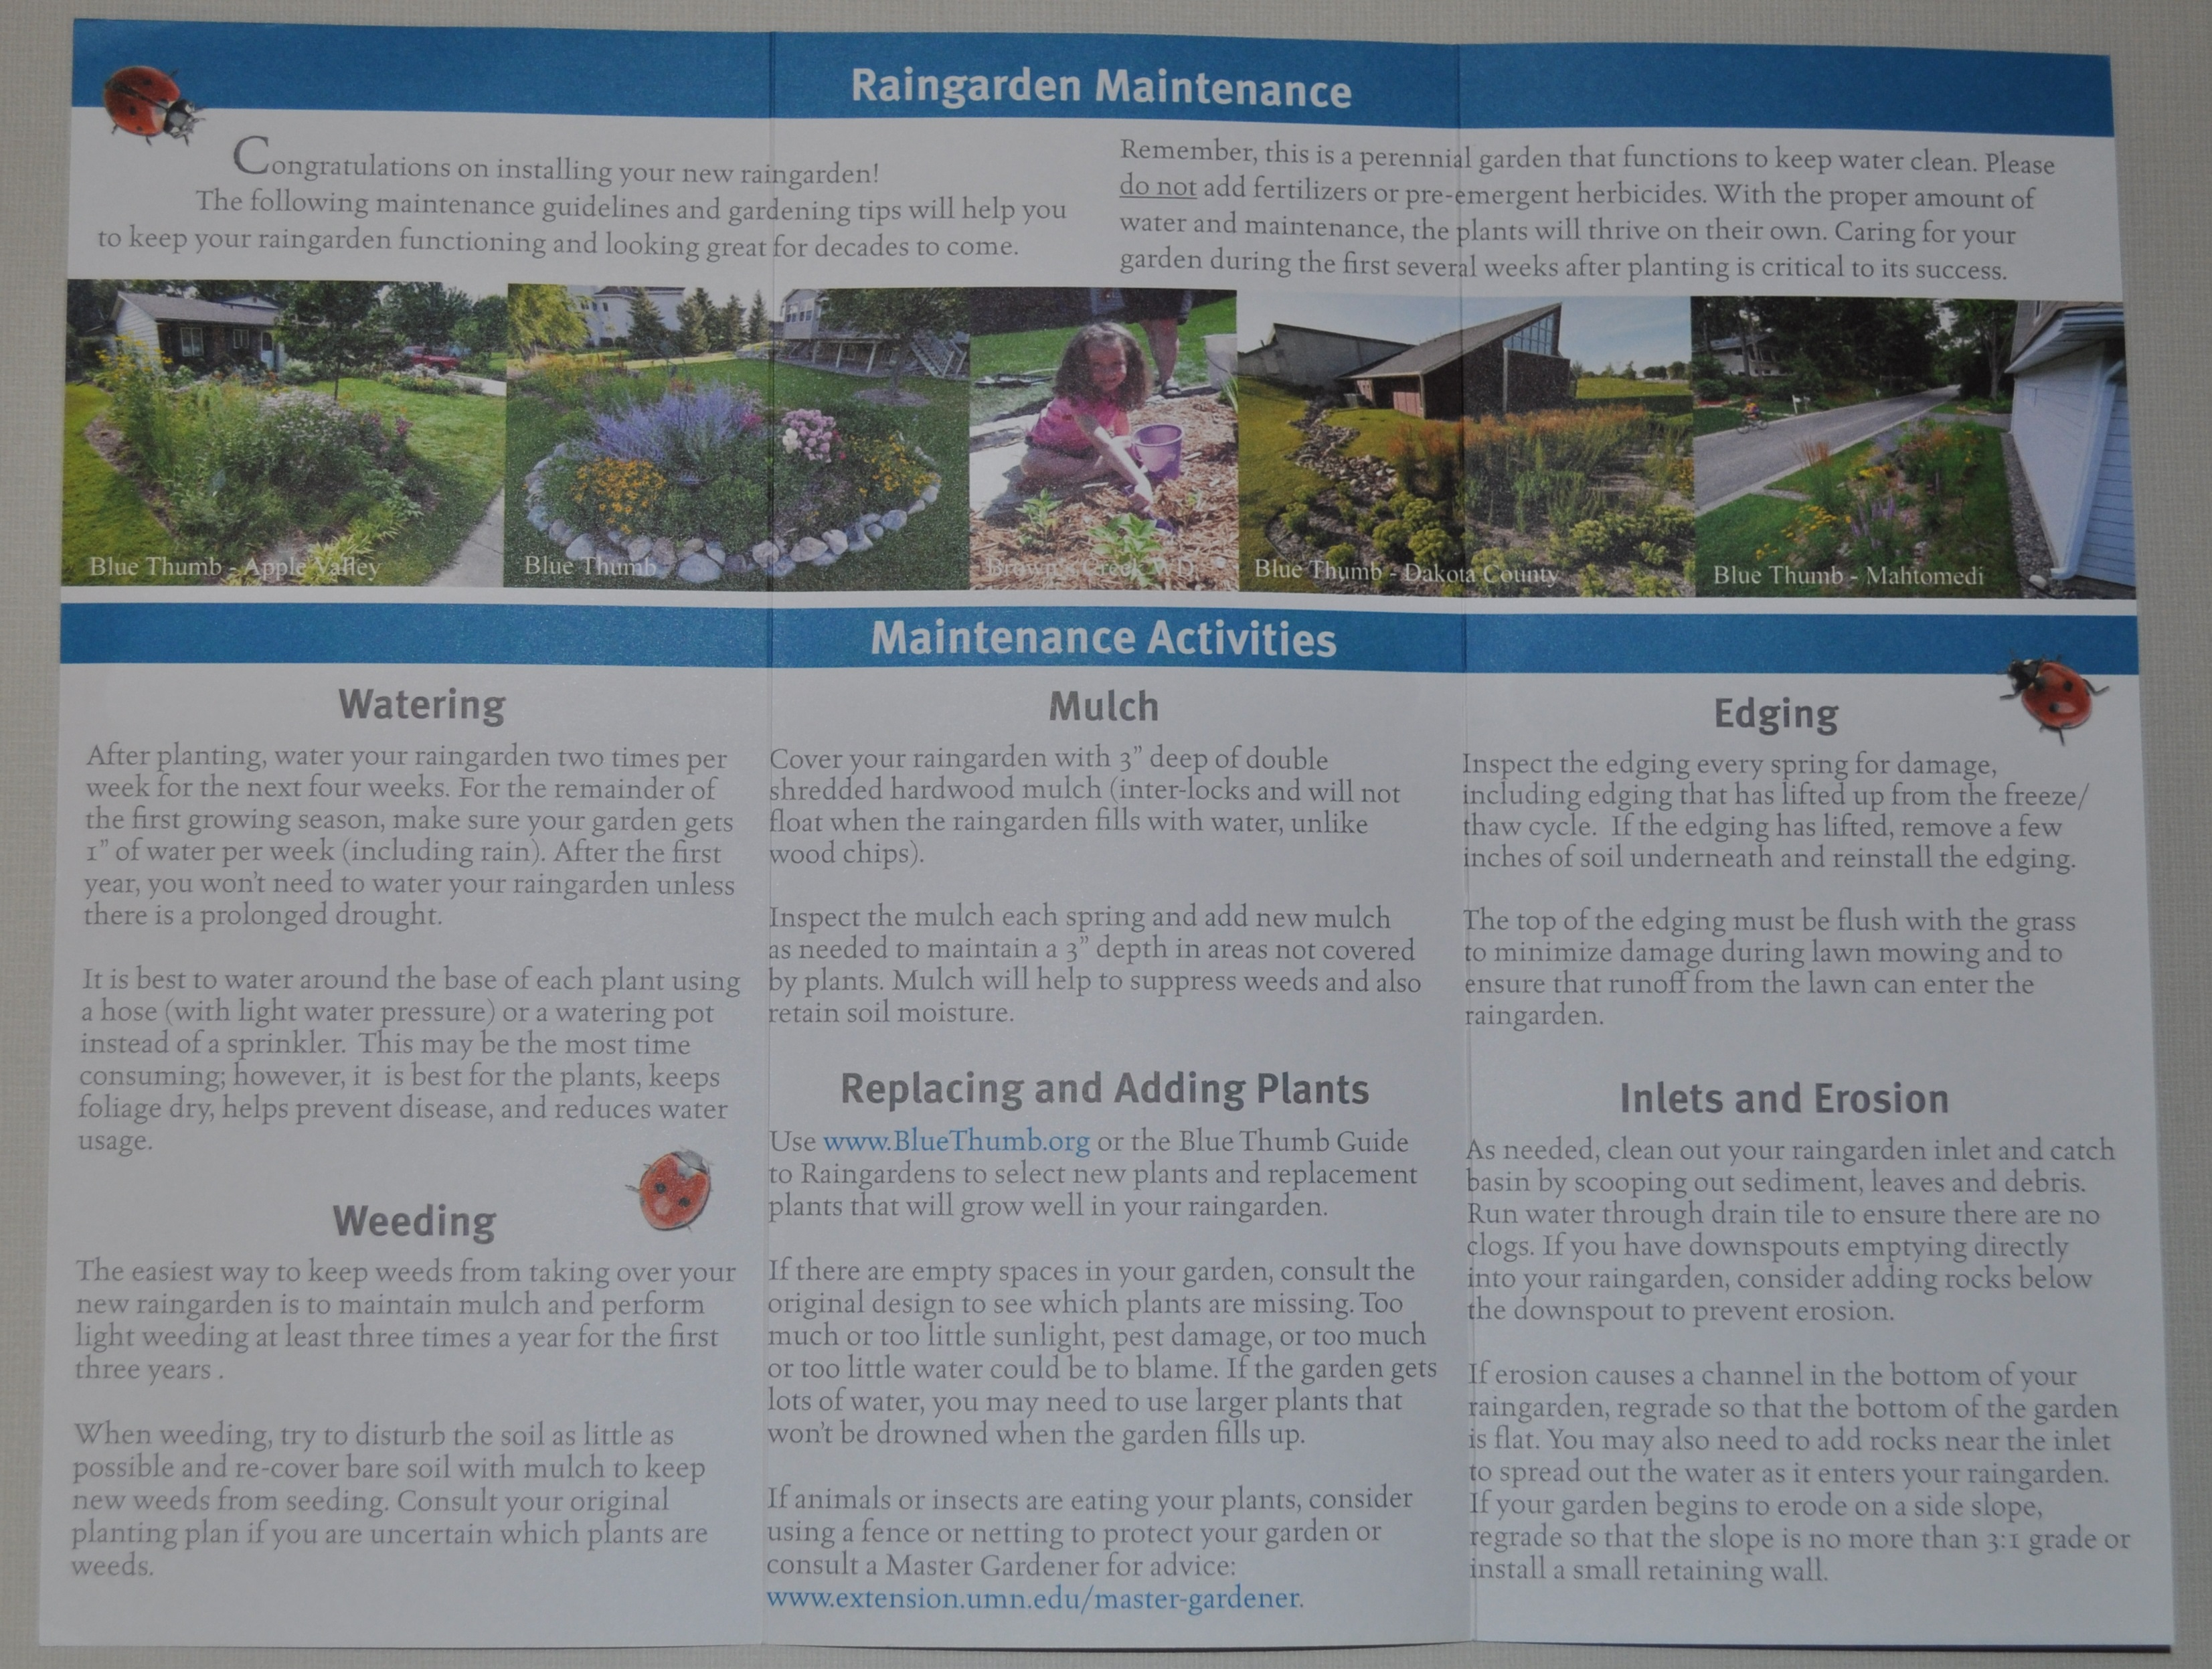 raingarden maintenance brochure inside